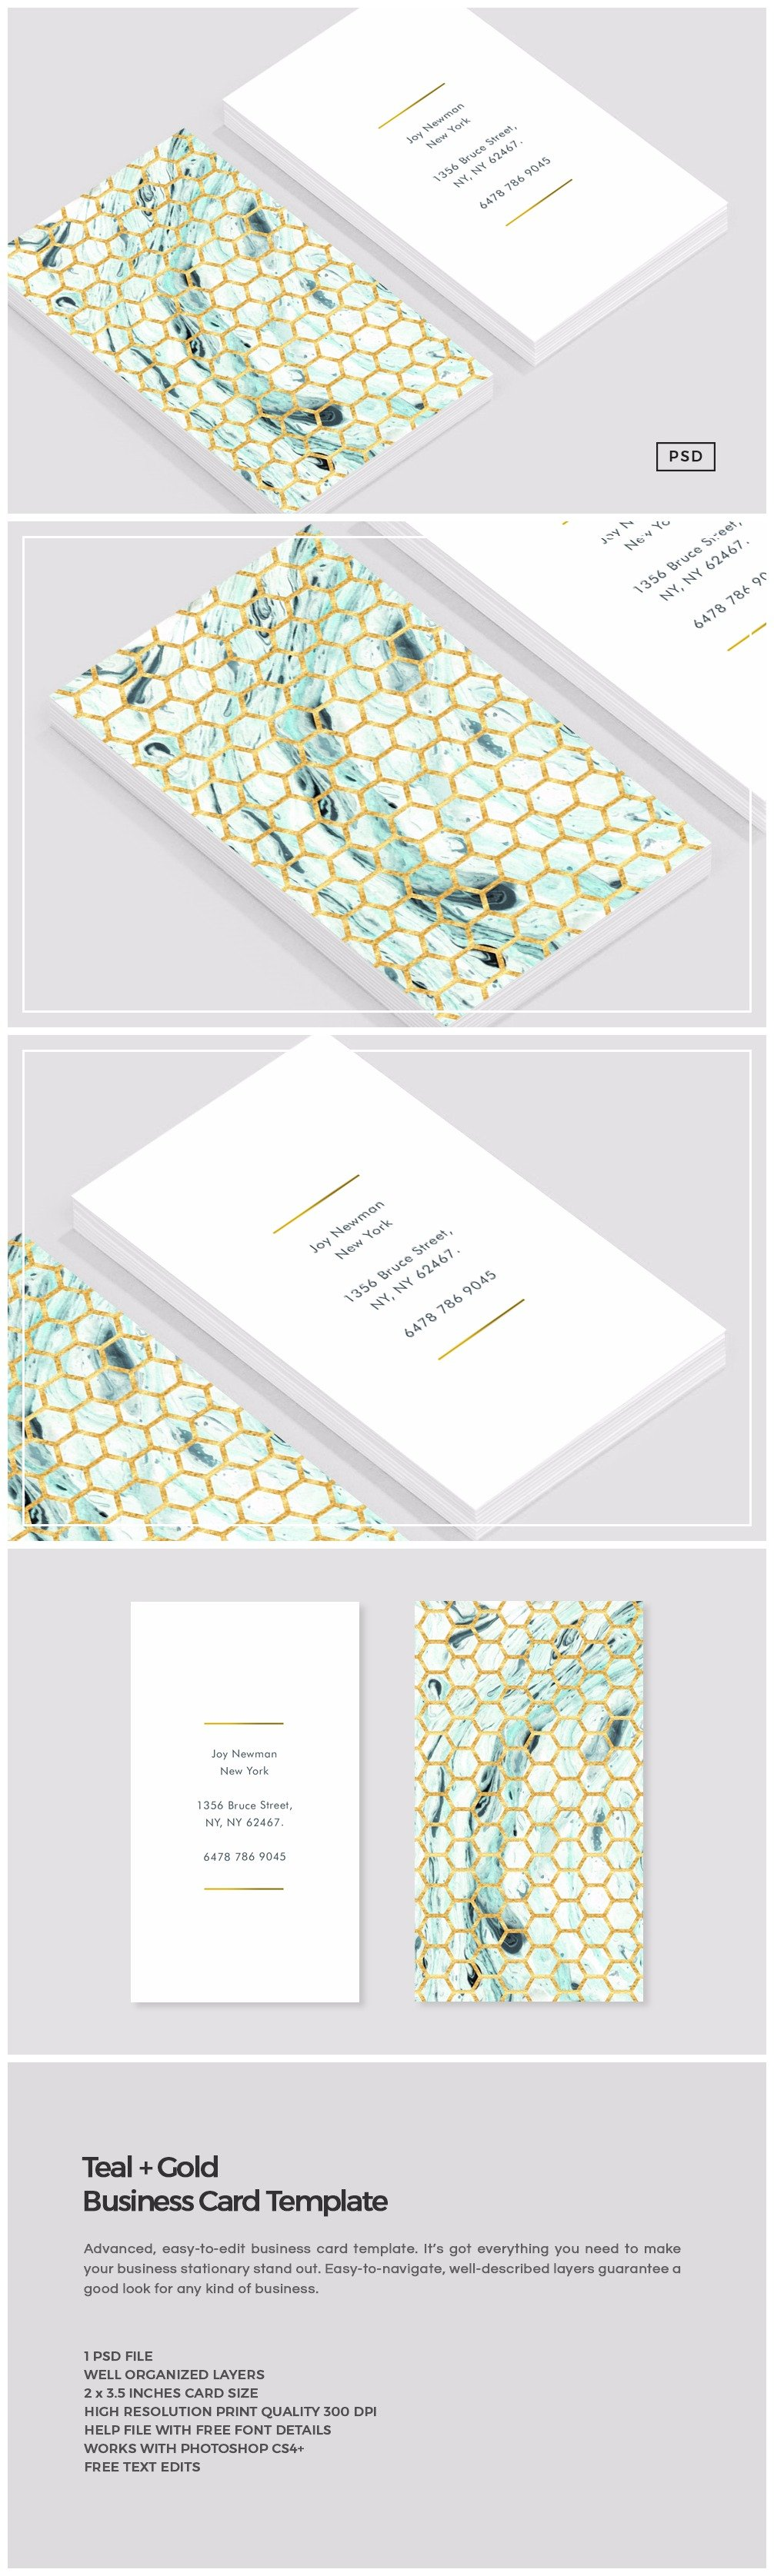 Fresh stock of business card template photoshop business cards teal gold business card template business card templates alramifo Image collections